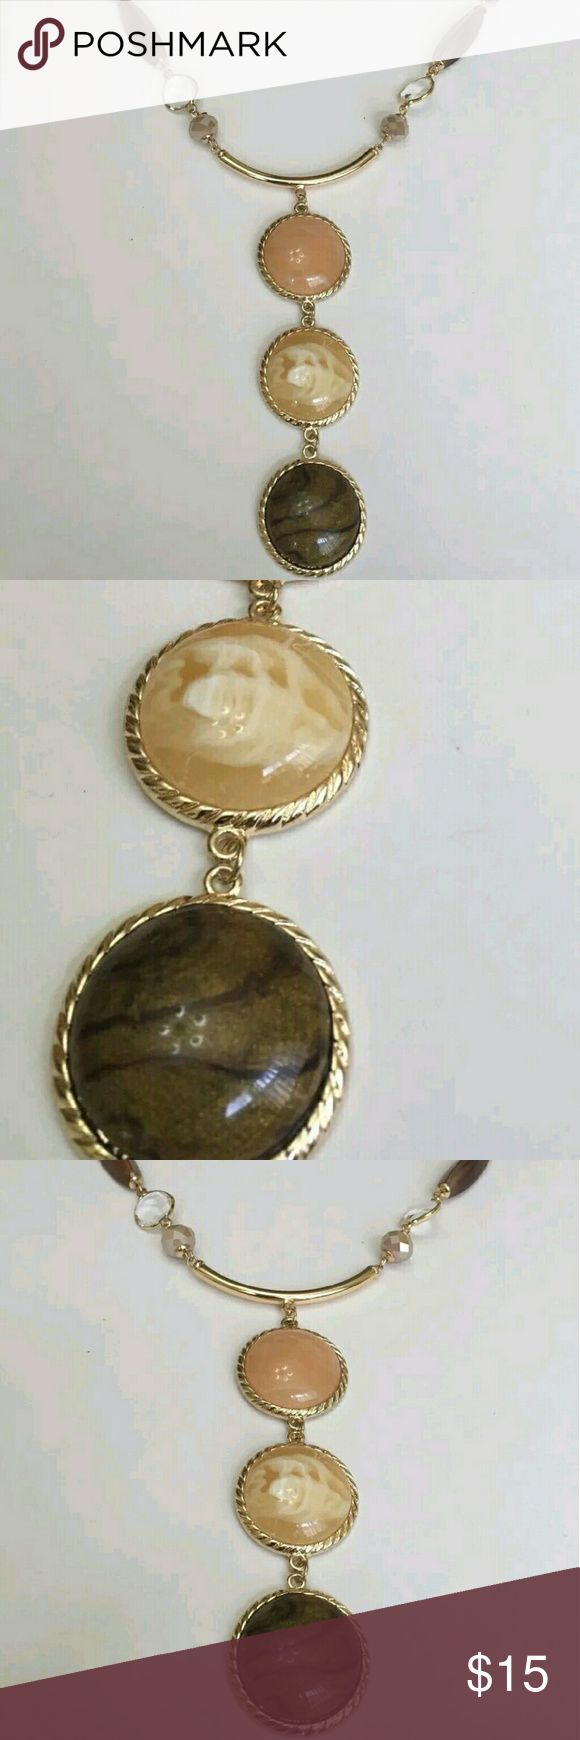 Macy's Inc 3 stone Necklace with tags INC Necklace $36 plus tax Gold Tone  New With Tags   Gold Tone Necklace with Brown, Salmon Colored and Ivory Stone   Measures 21 inches and can adjust up to 24  inches if needed  Same Day Shipping No trades or try ons INC International Concepts Jewelry Necklaces